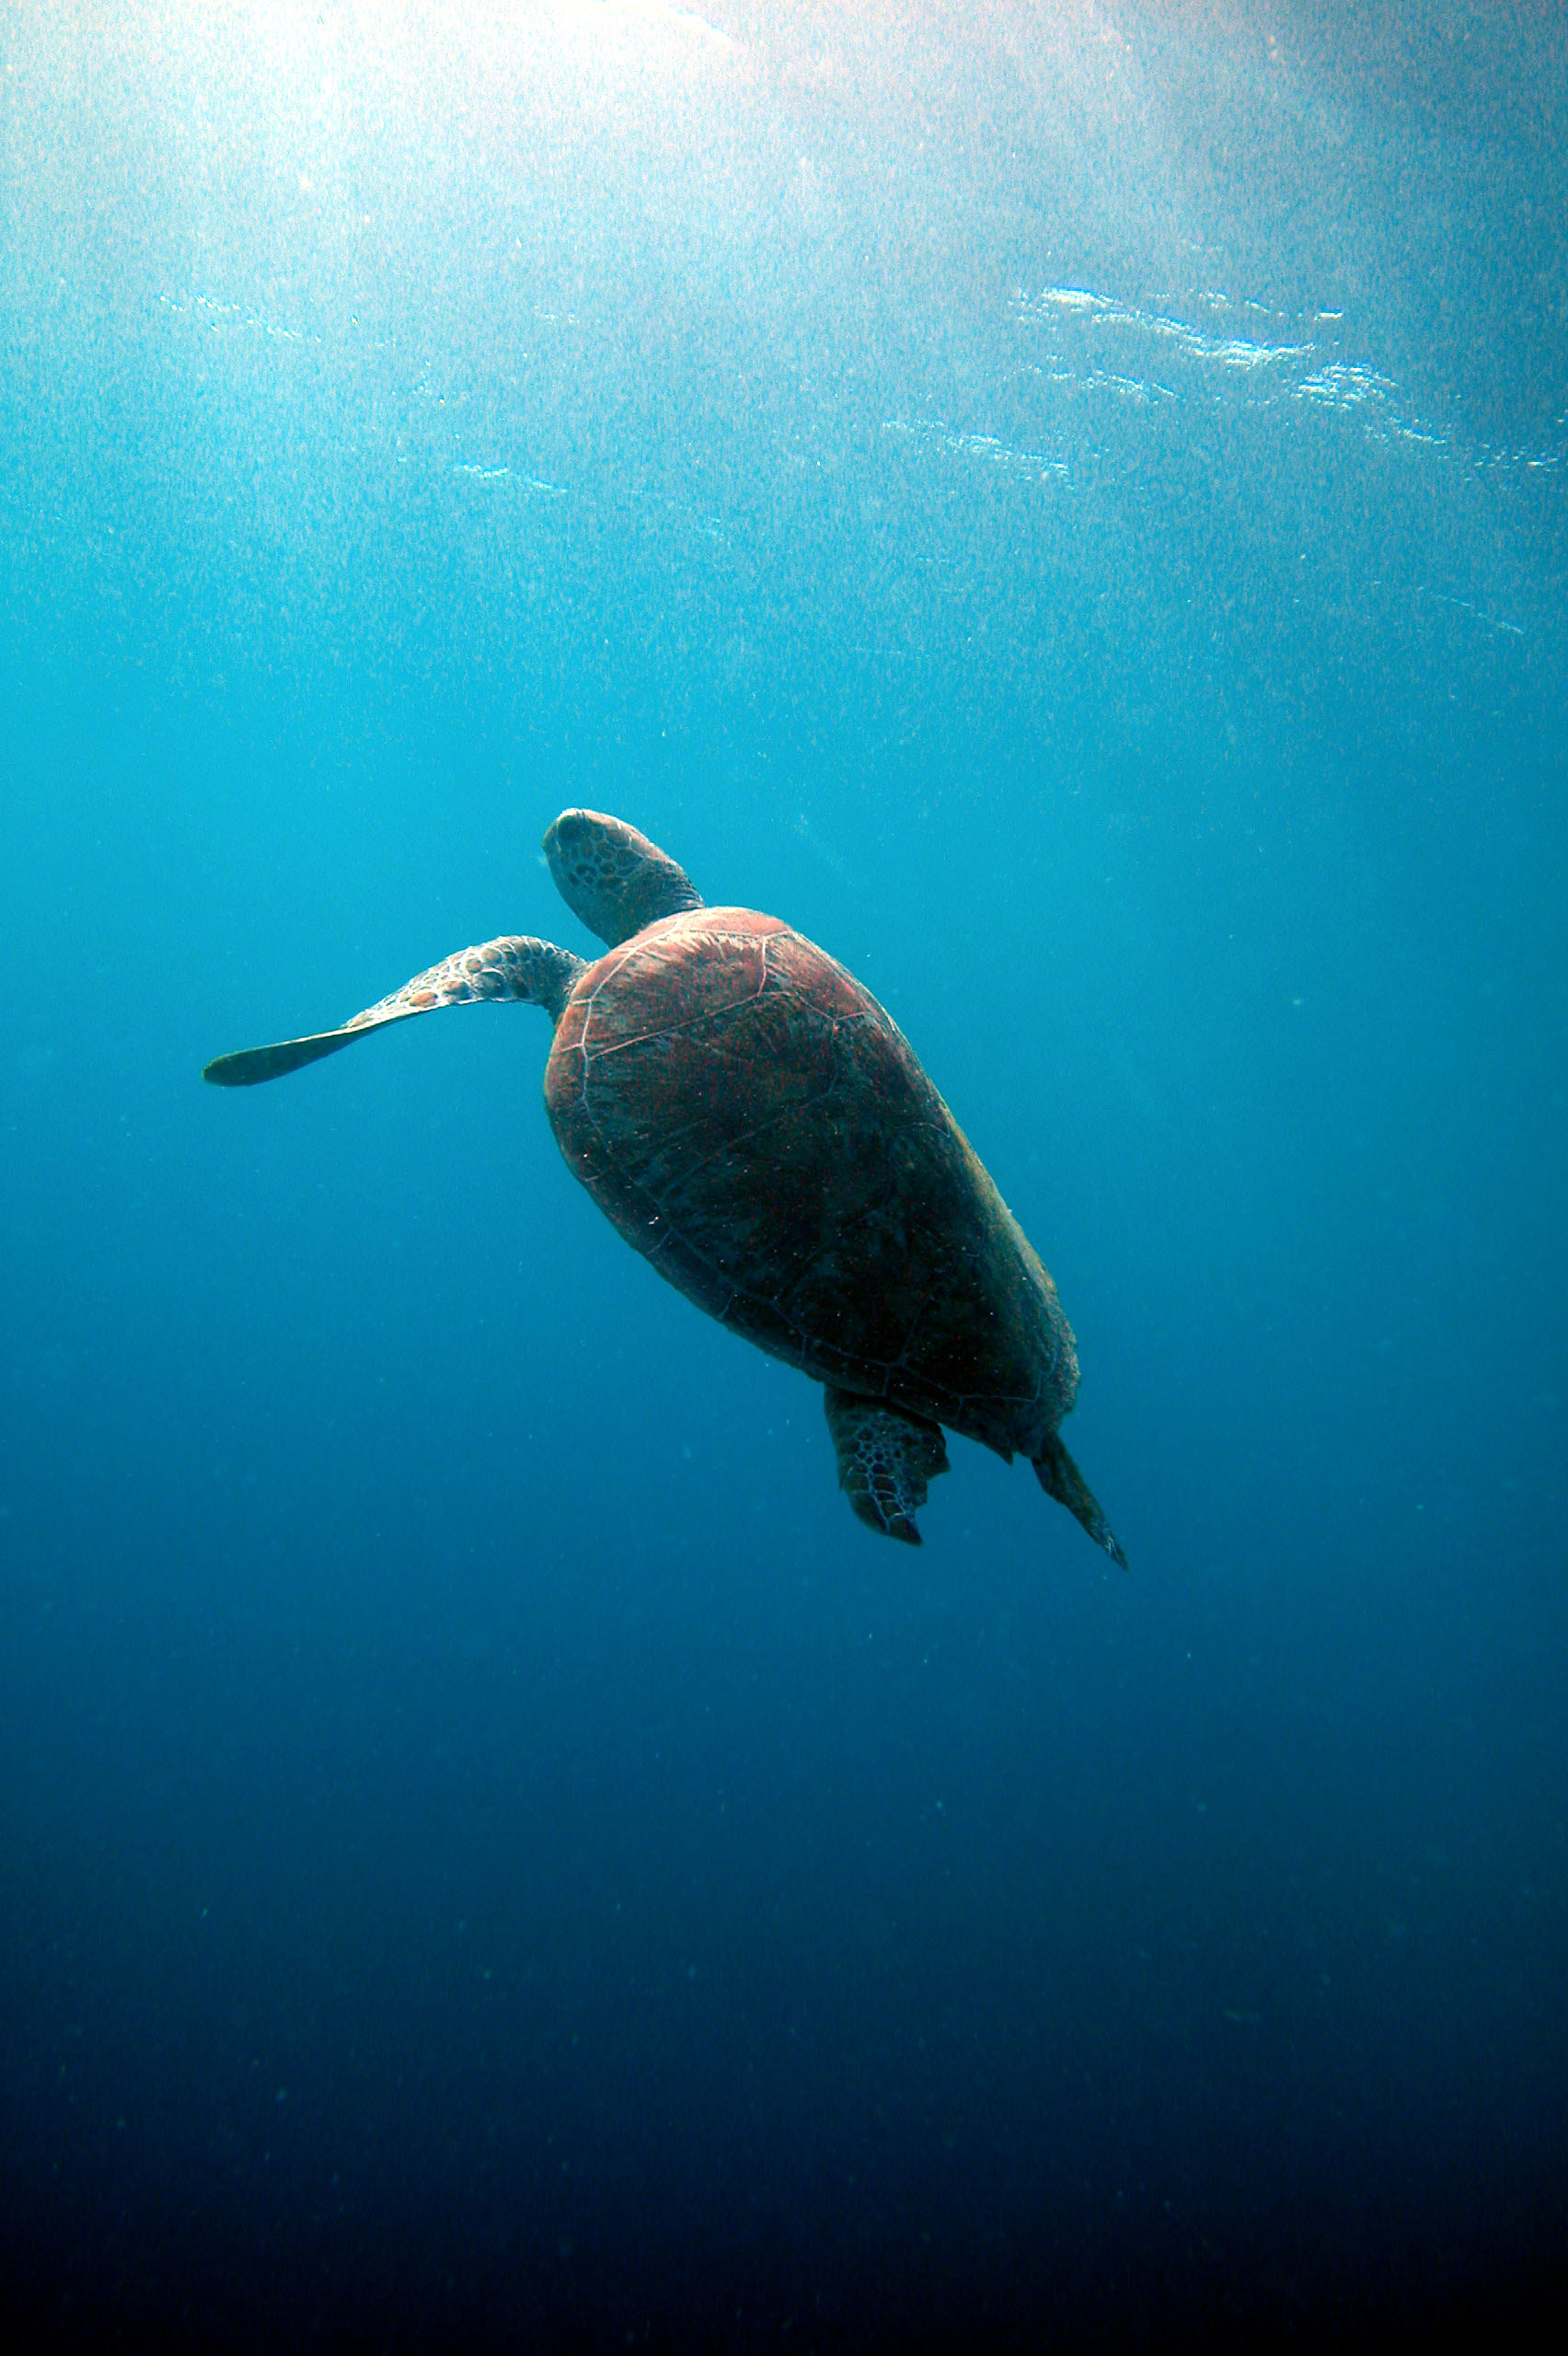 FASTEST SEA TURTLE ON THE REEF